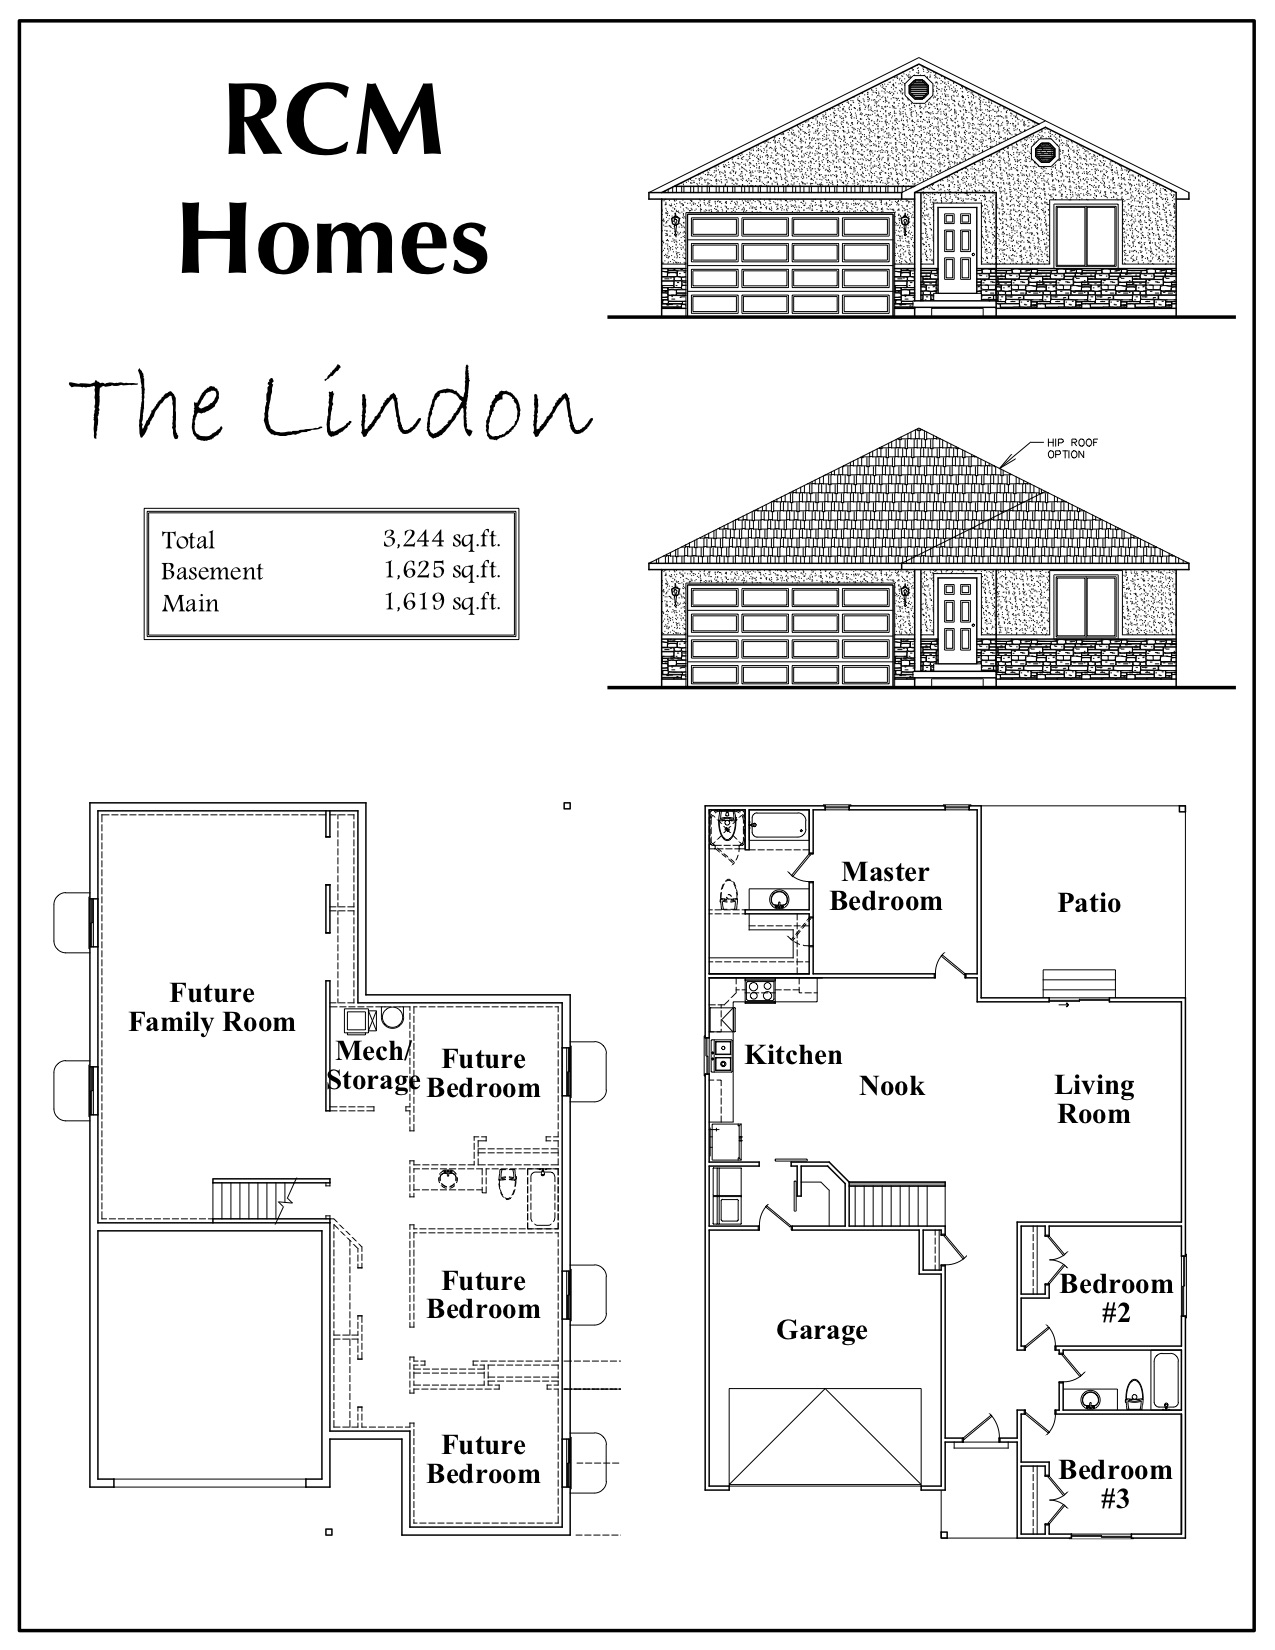 Lindon_Standard-flyer.jpg